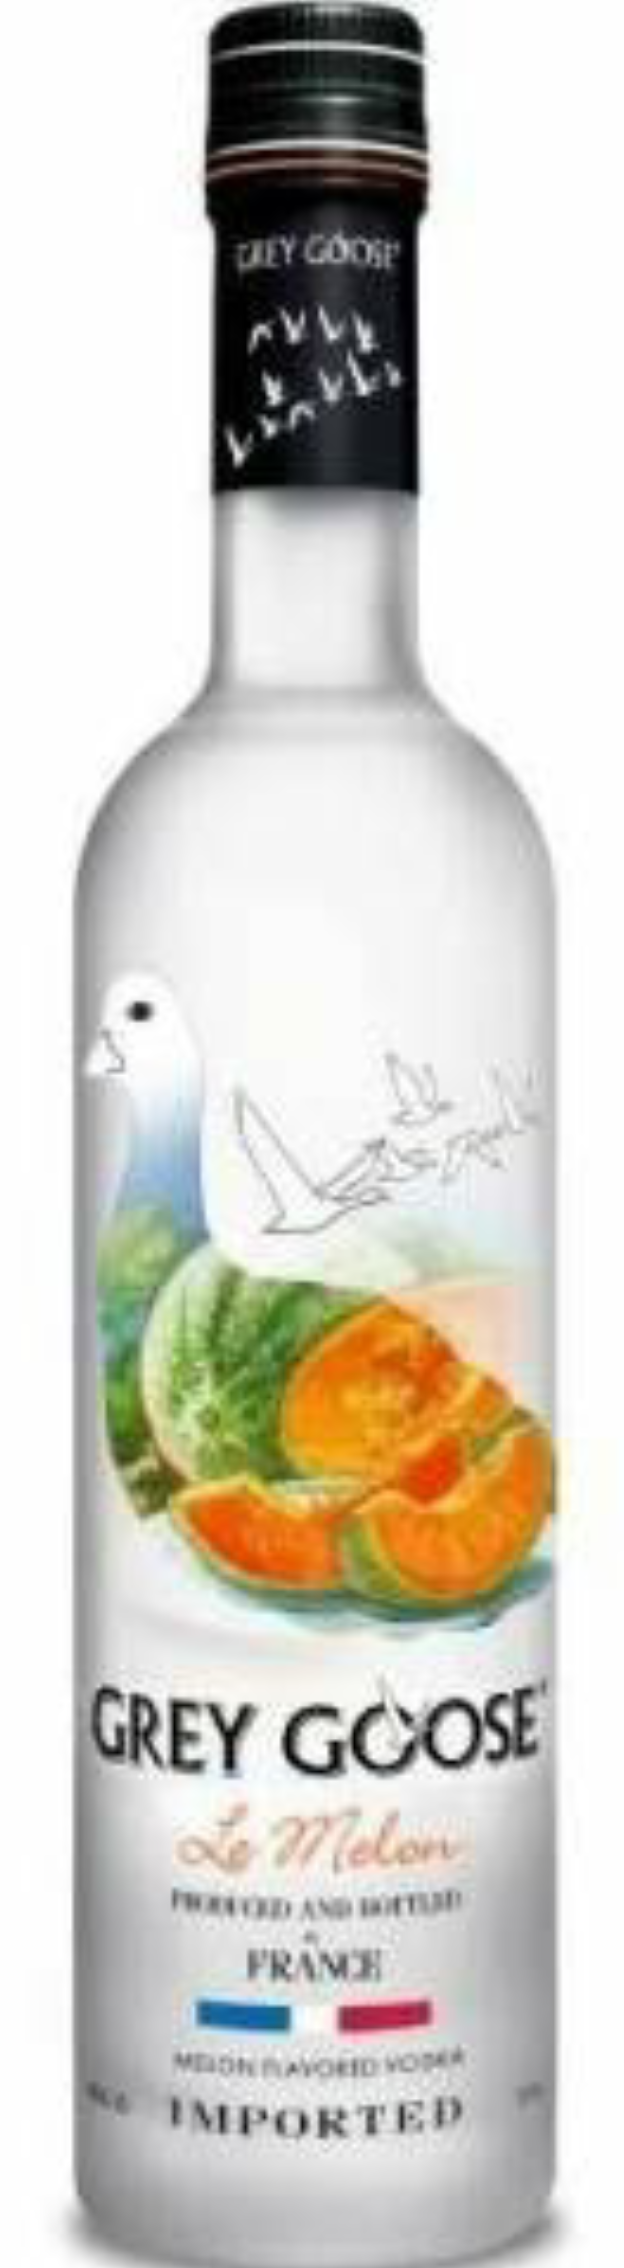 Grey Goose Le Melon 750ML